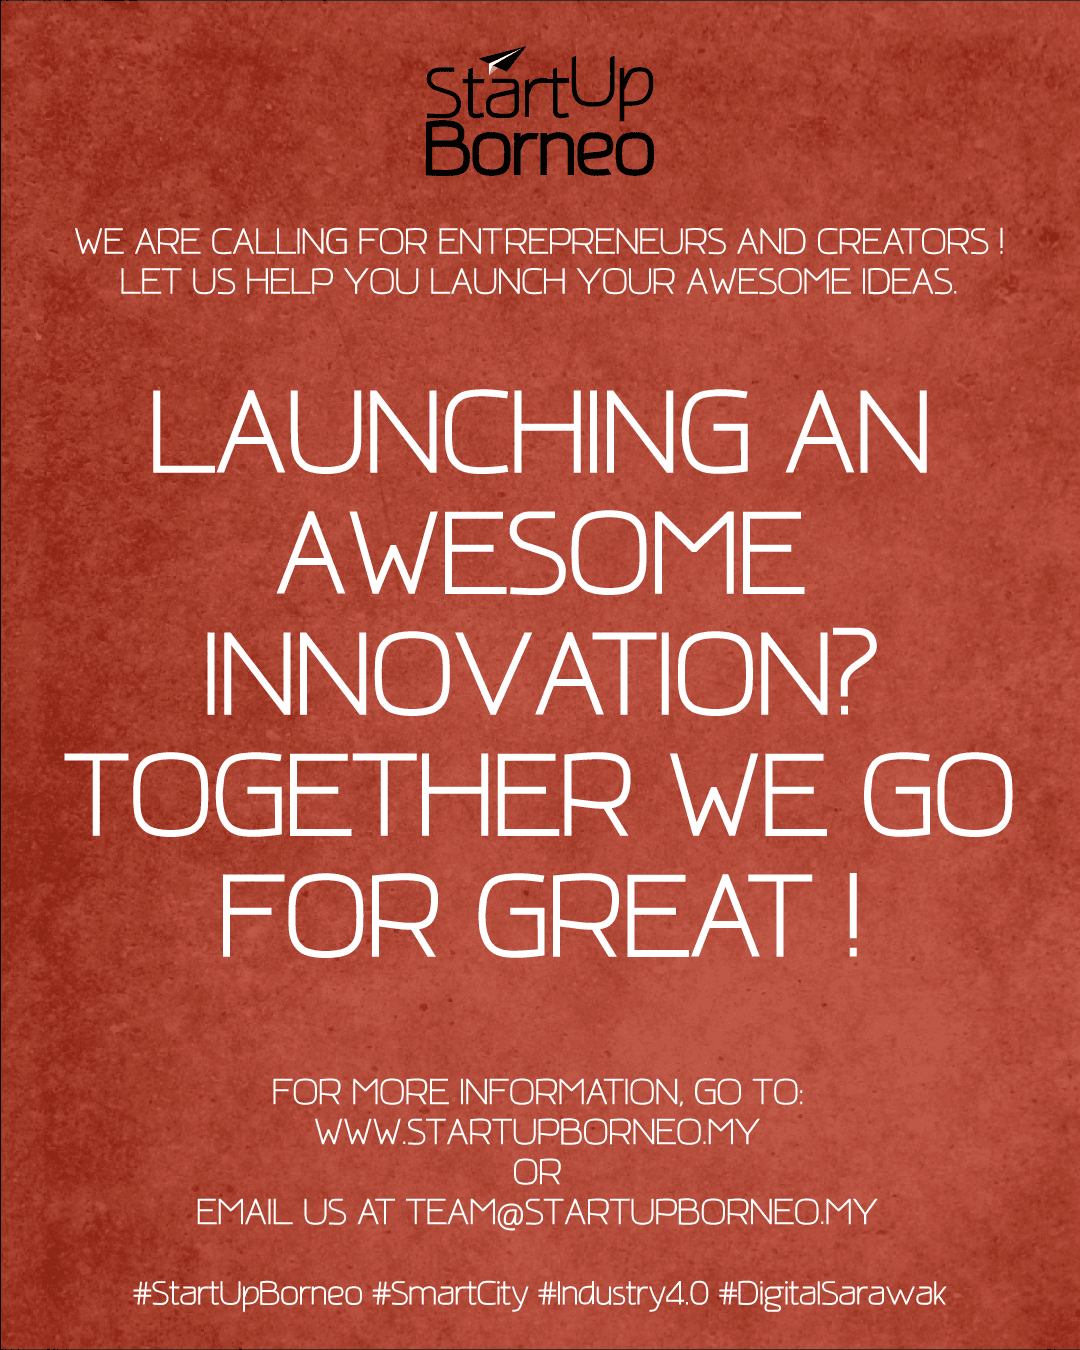 [Poster]Launching An Awesome Innovation? Together We Go For Great.